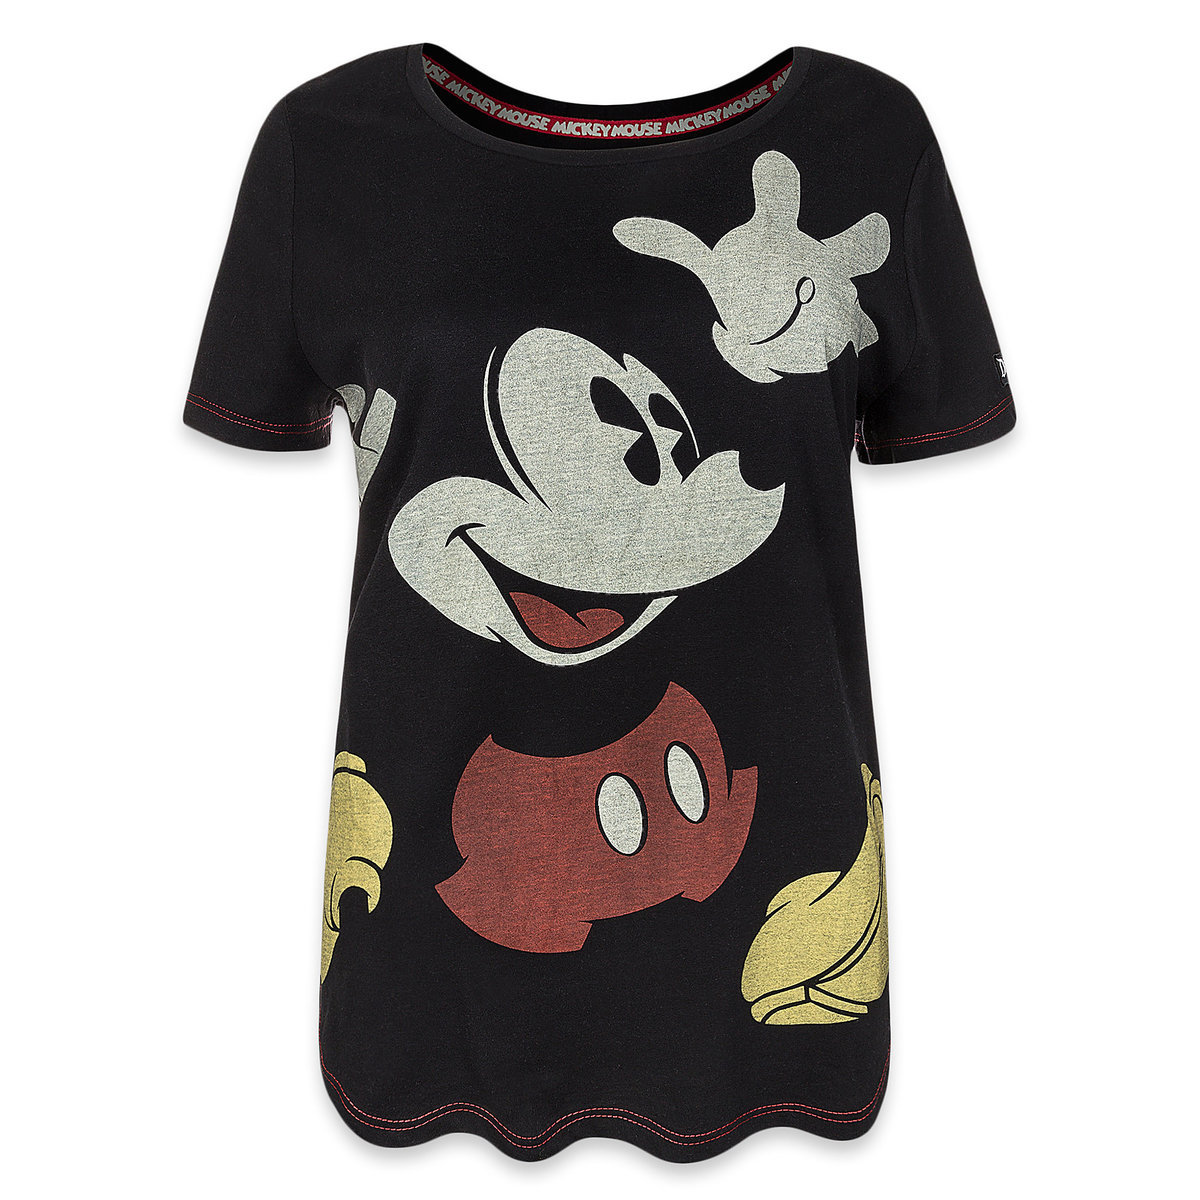 225abc16 Product Image of Mickey Mouse T-Shirt - Walt Disney World - Women # 1